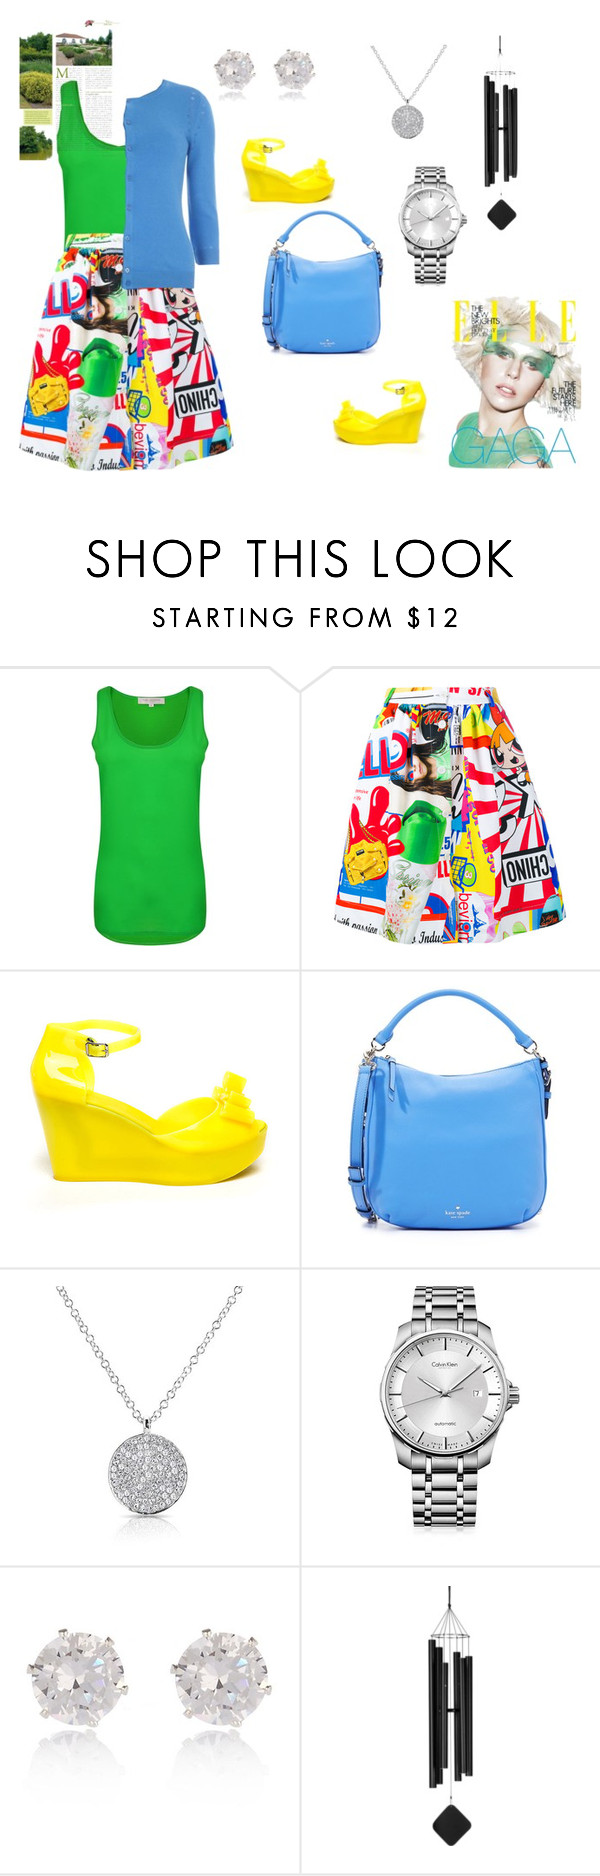 """""""On The Brighter Side. Cardigan #7 #cardigan #springlayers #spring #skirt #green #chill"""" by thedistinctiveme ❤ liked on Polyvore featuring French Connection, Moschino, Kate Spade, Calvin Klein, River Island and Dorothy Perkins"""